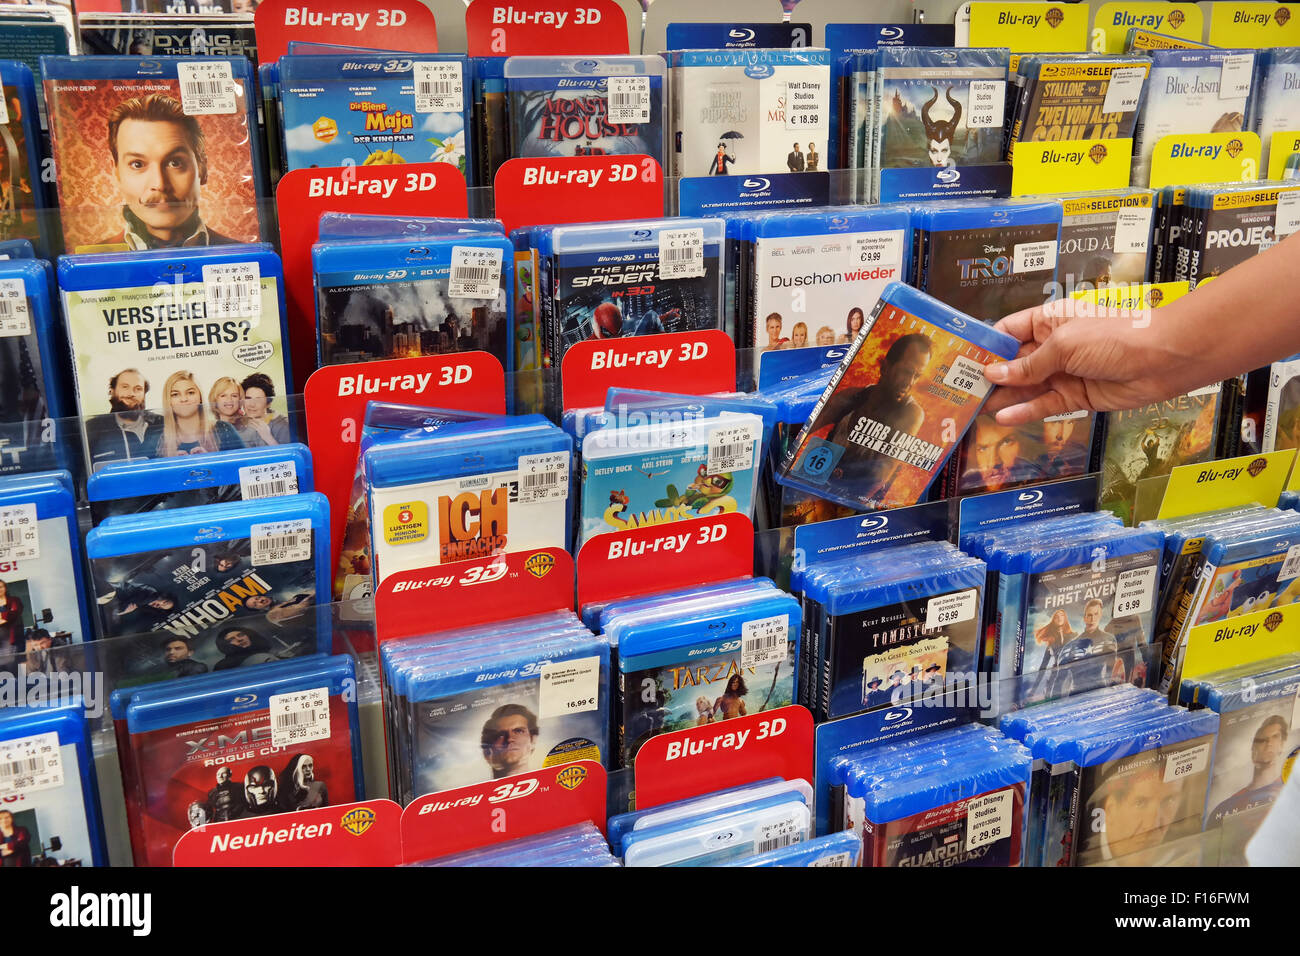 Blu-ray Discs and DVDs Stock Photo